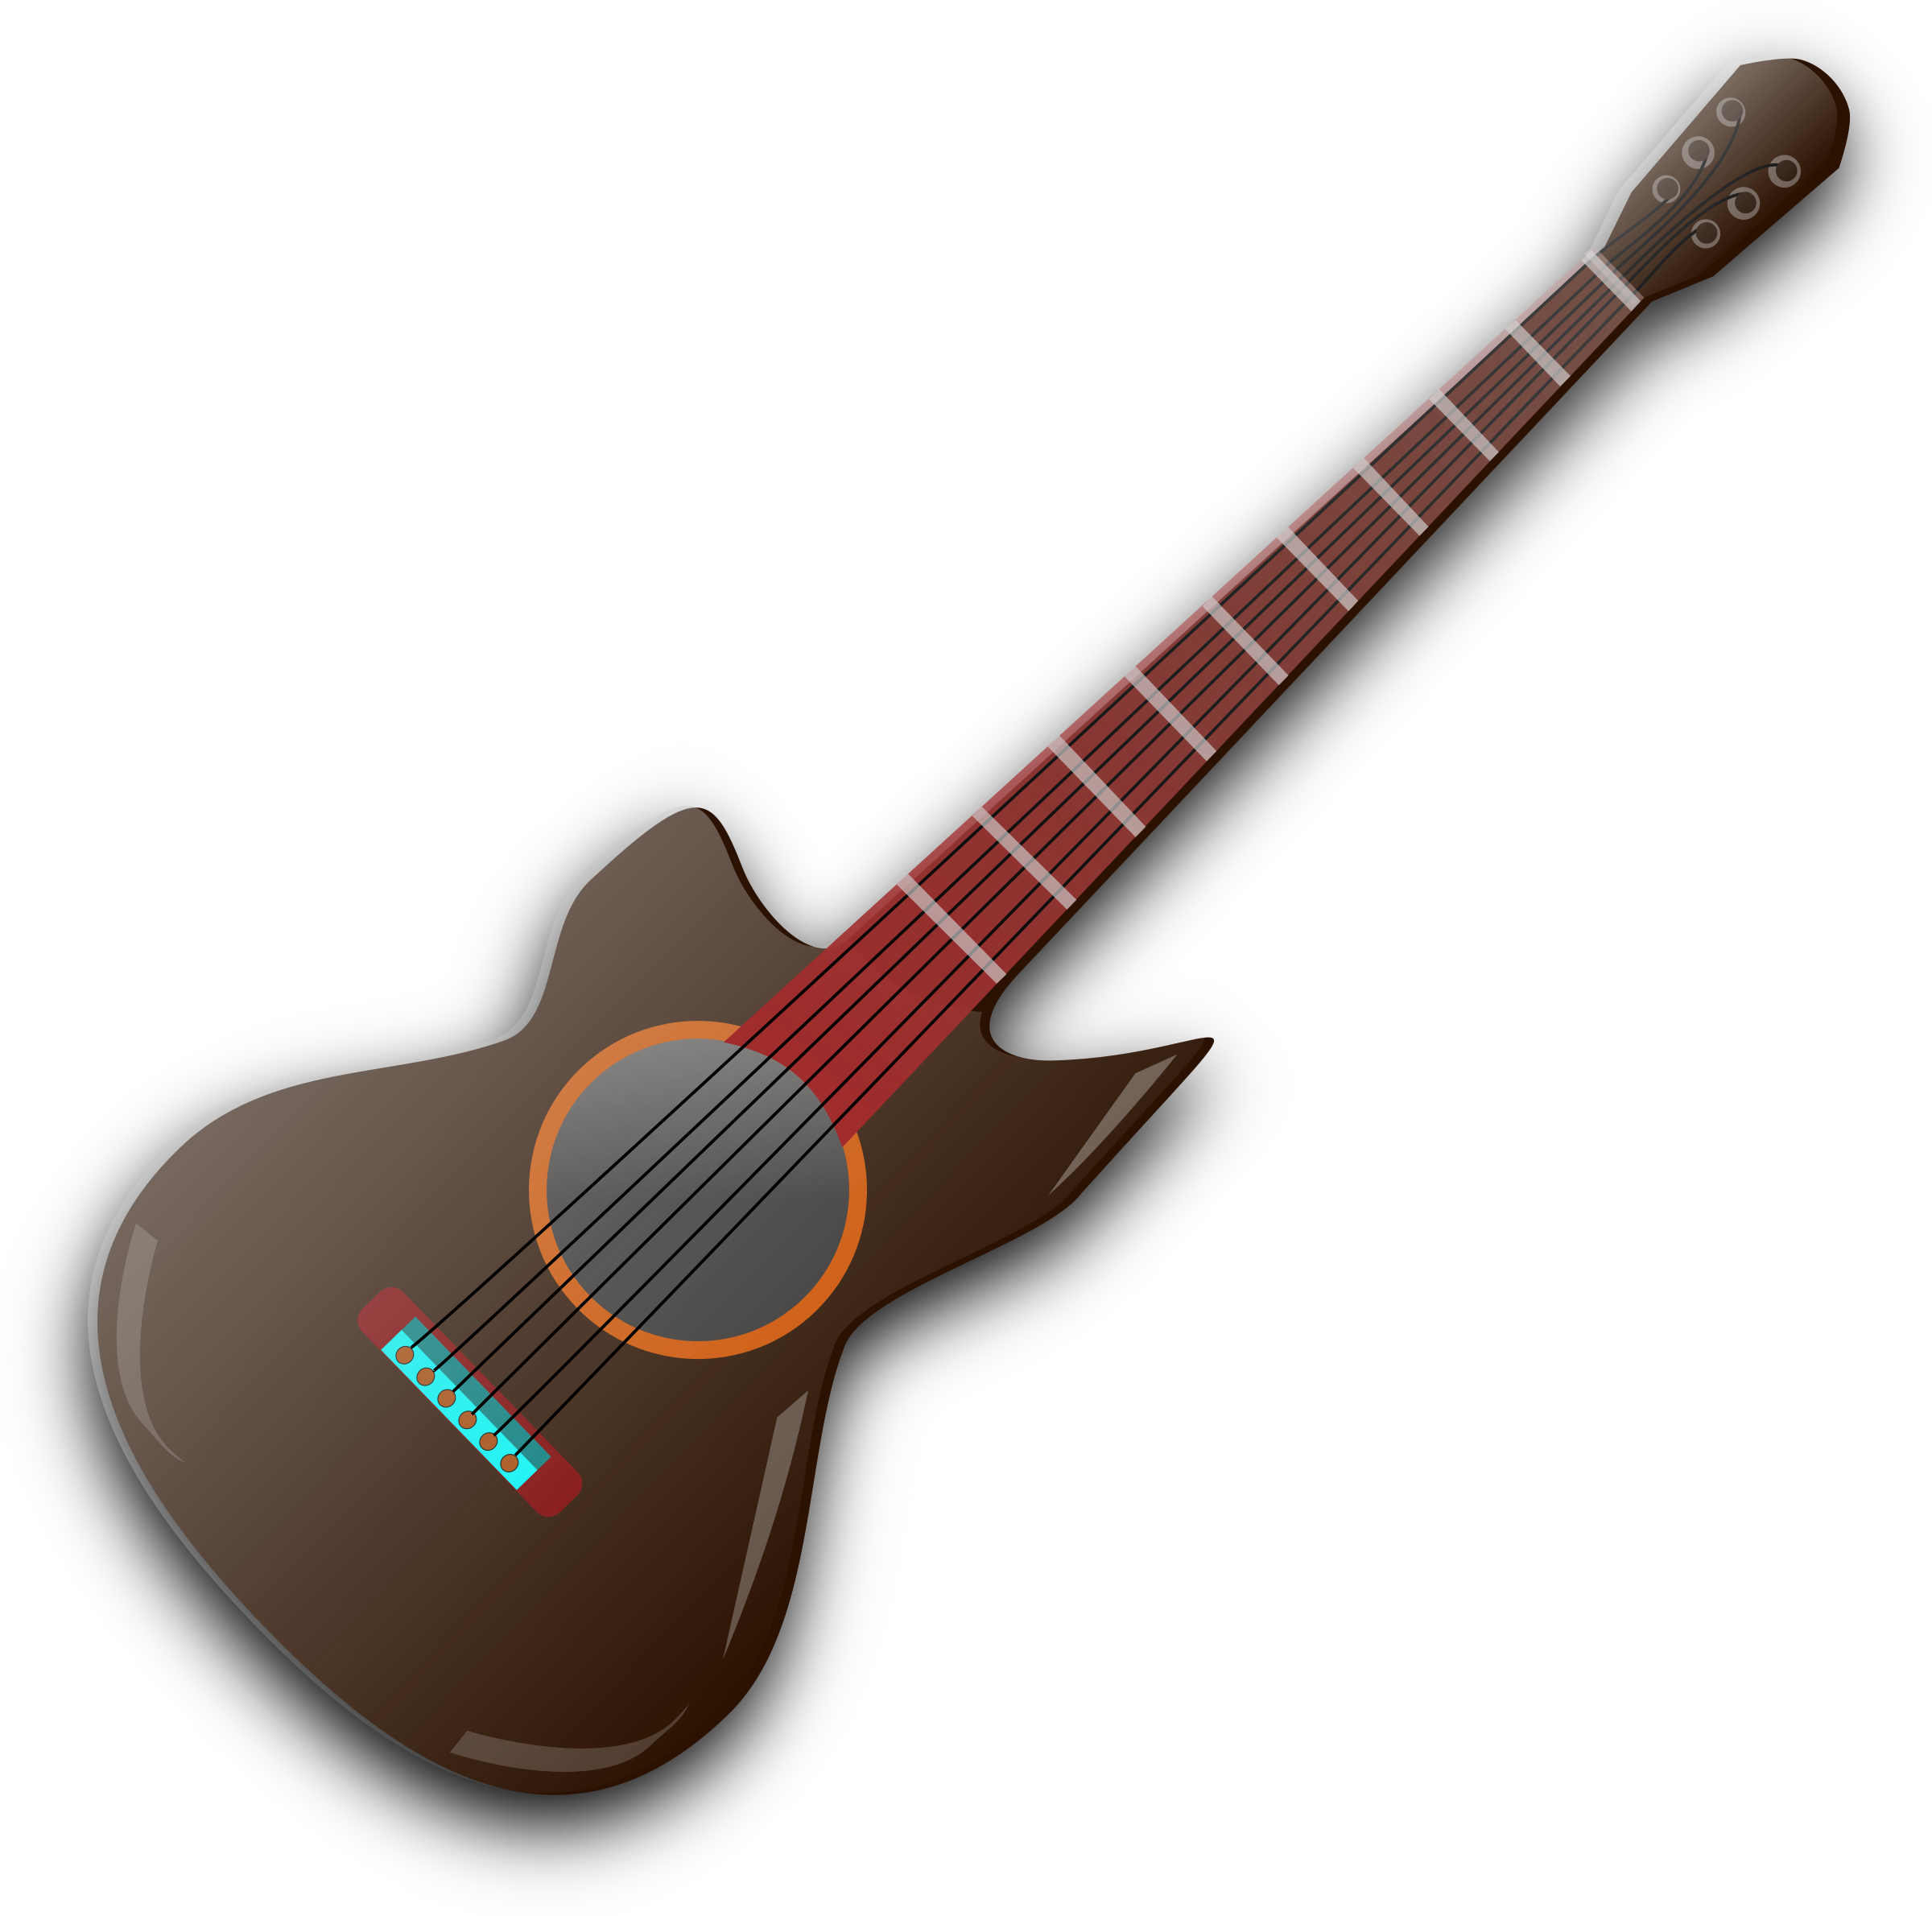 Clipart guitar symbol. Wooden icons png free